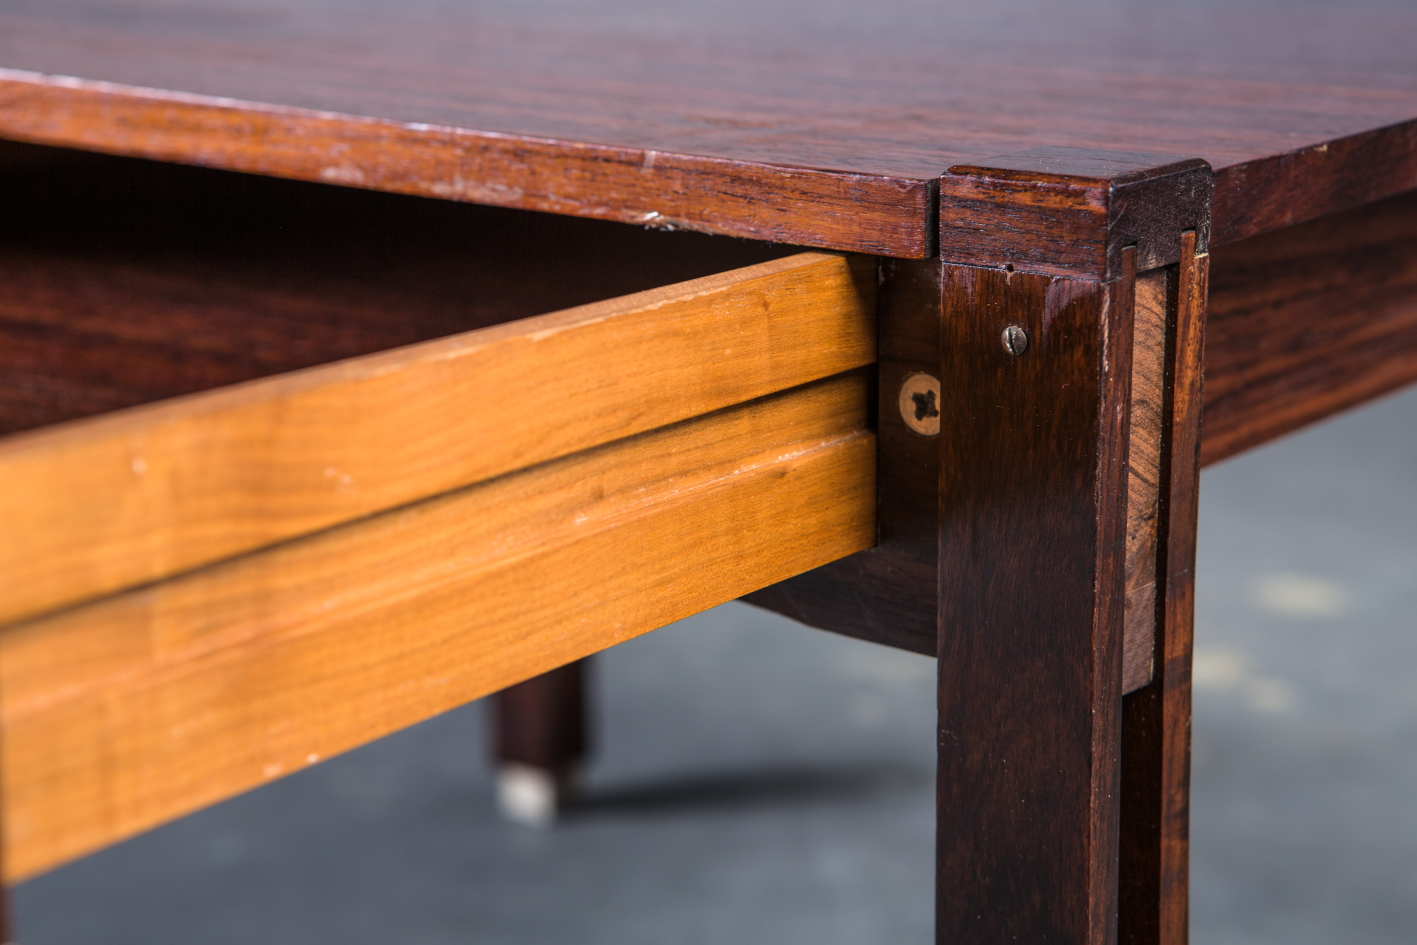 Low table with drawer - Ico Parisi for Mim - Drawer detail